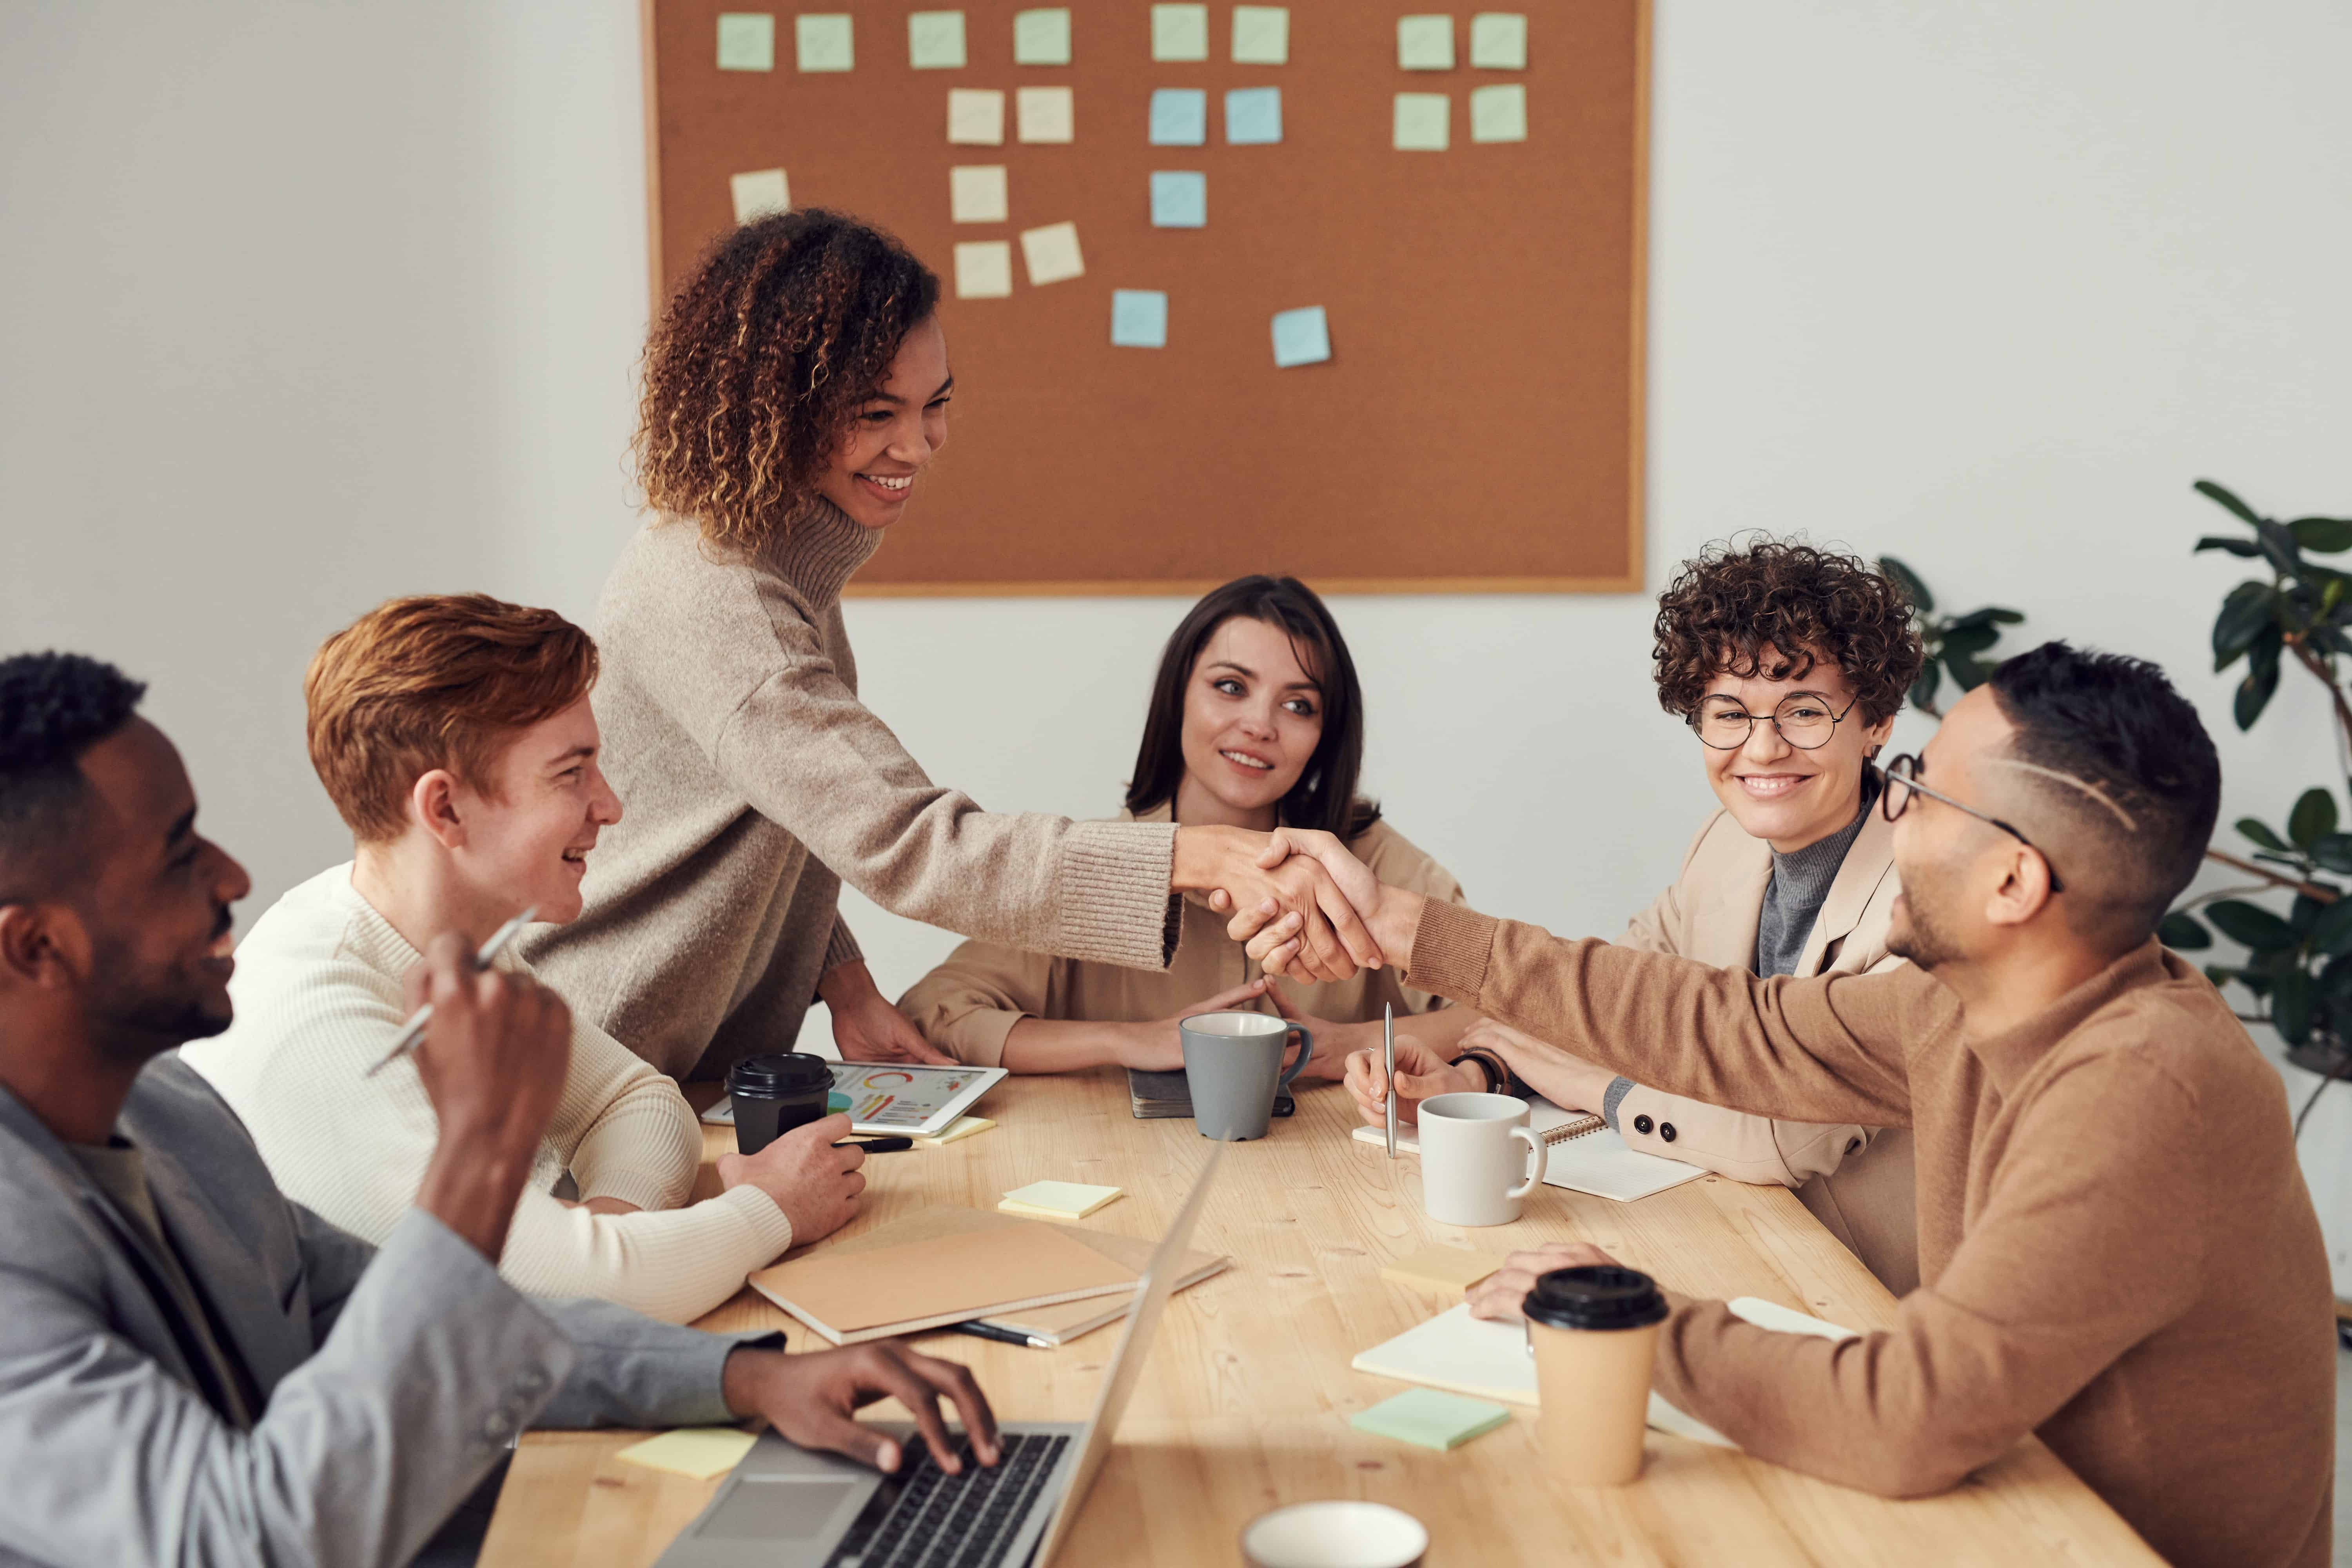 How To Build Trust In A Team